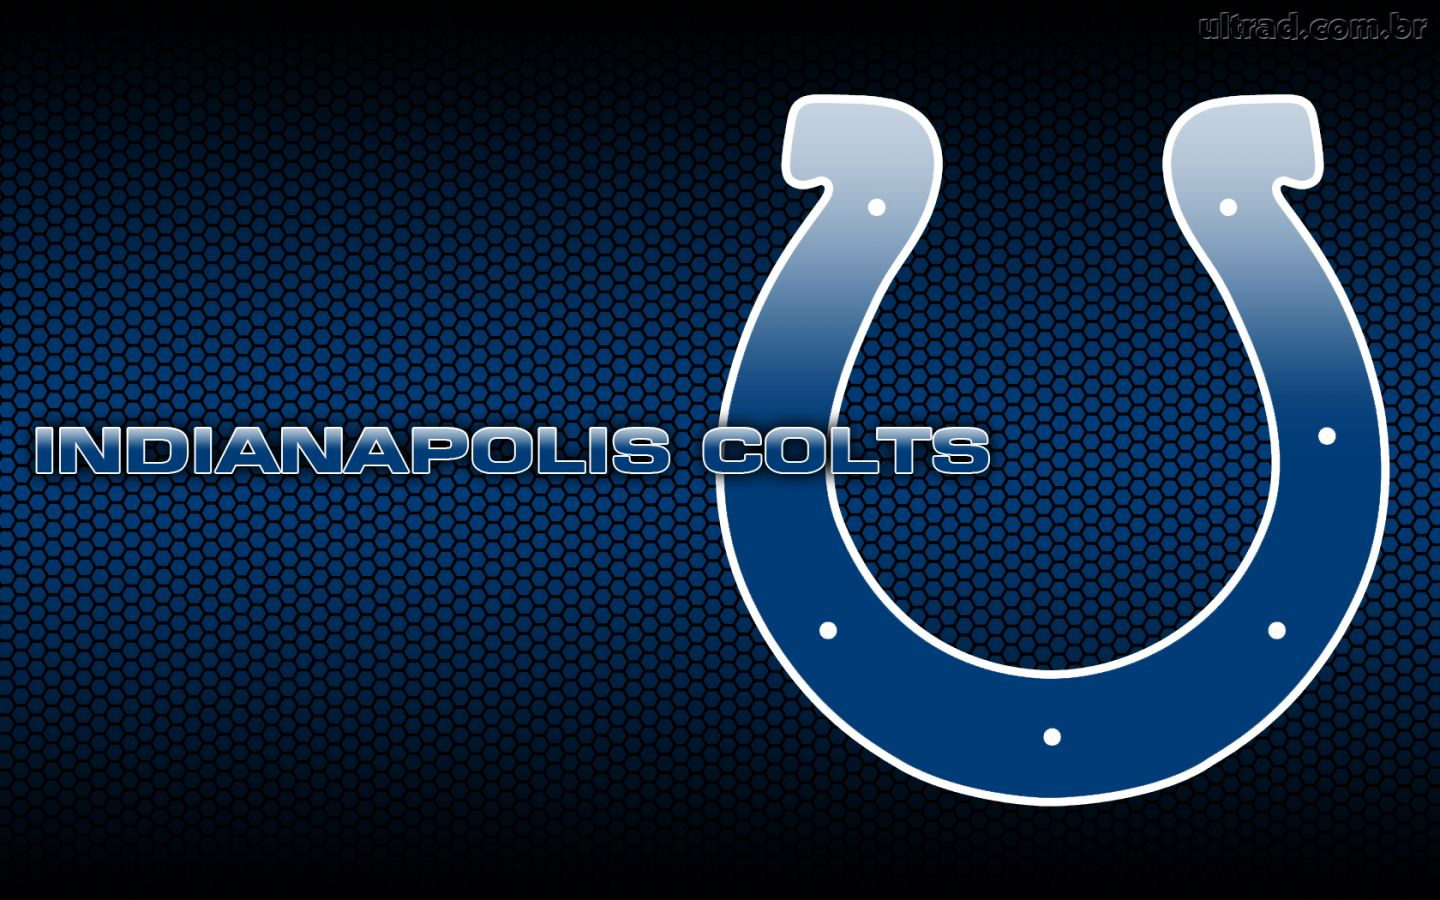 Enjoy our wallpaper of the month!!! Indianapolis Colts wallpaper